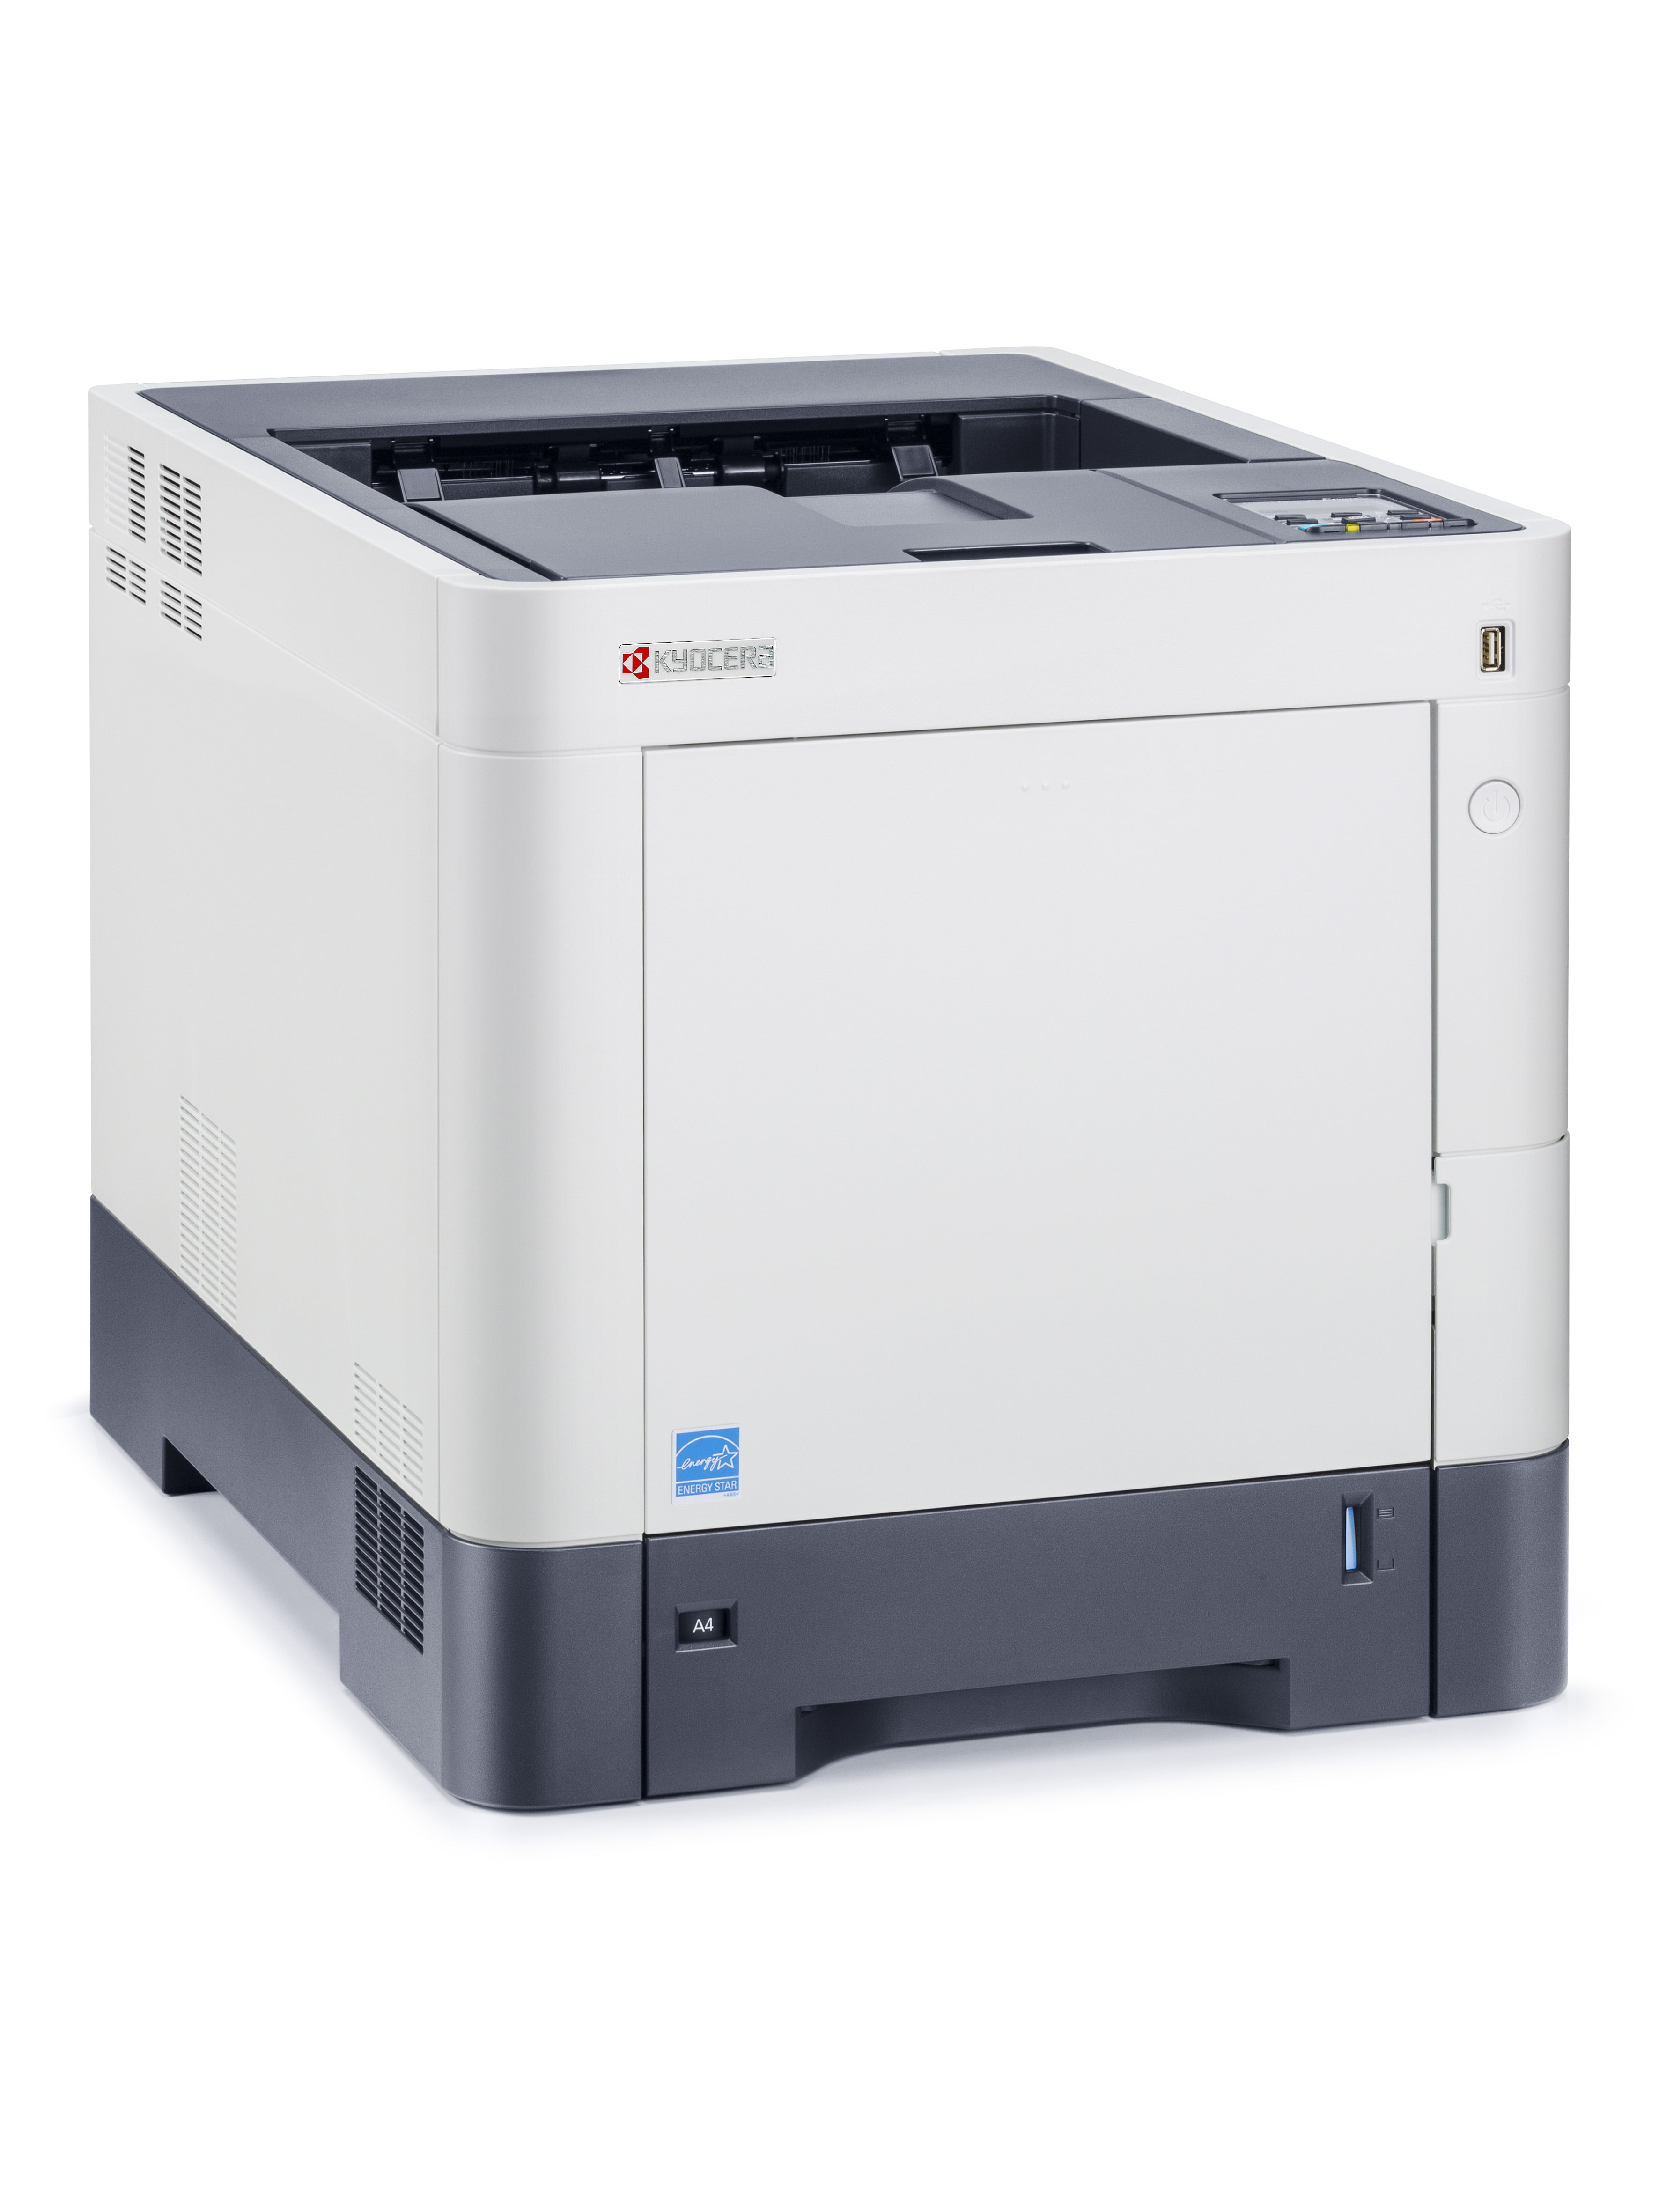 Kyocera ECOSYS P6130cdn Colour Laser Printer